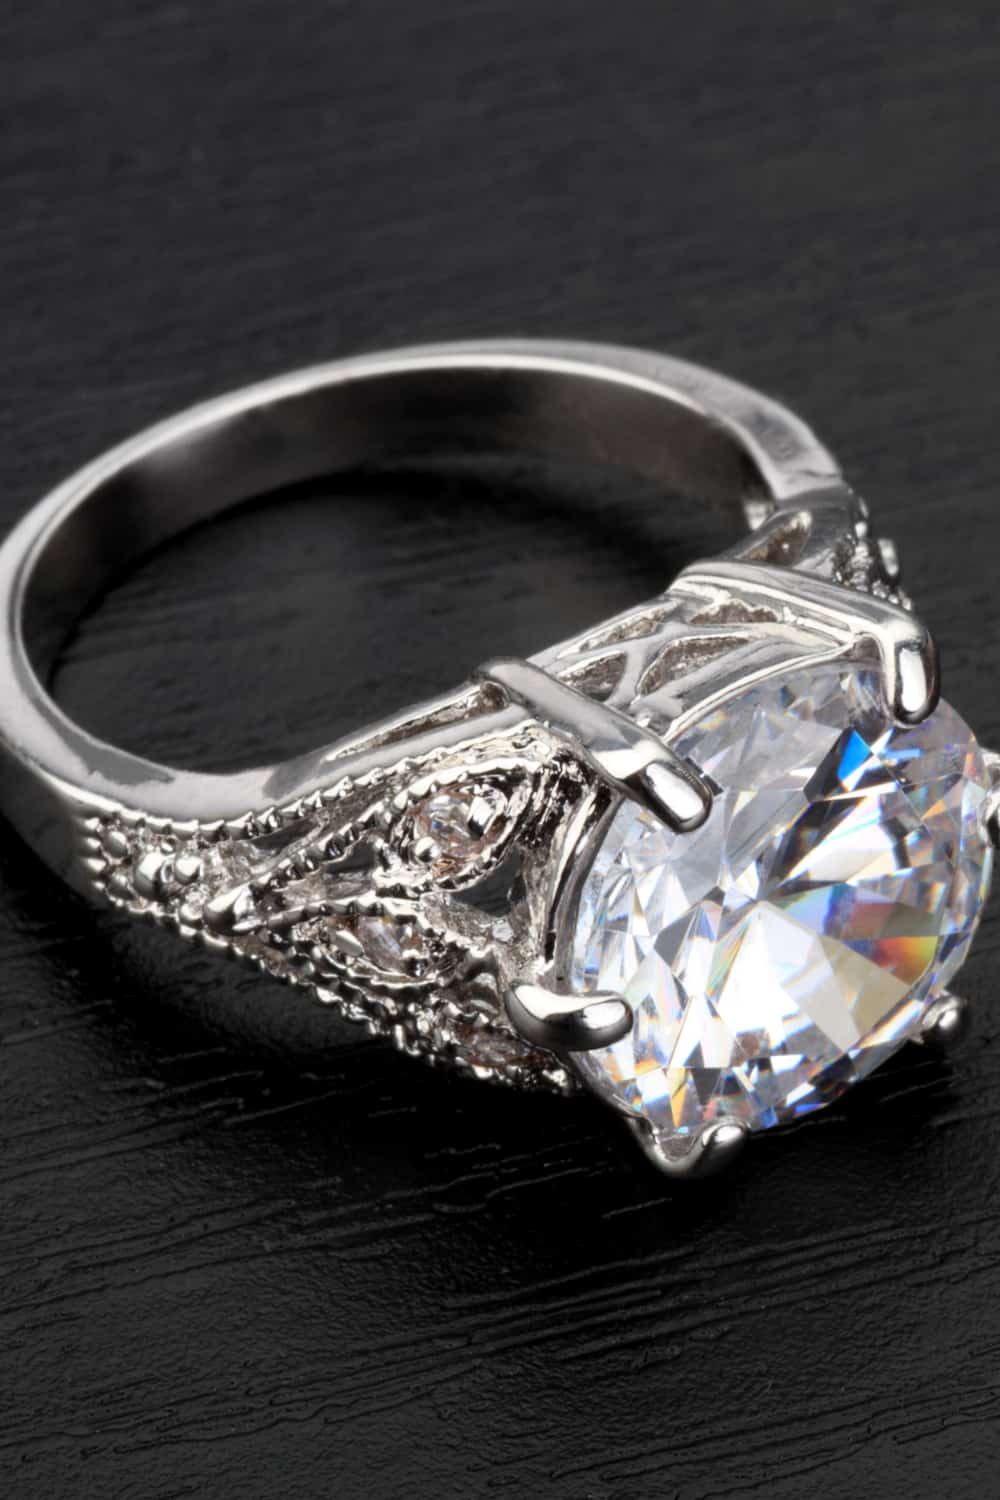 Things That Affect the Price of an Engagement Ring